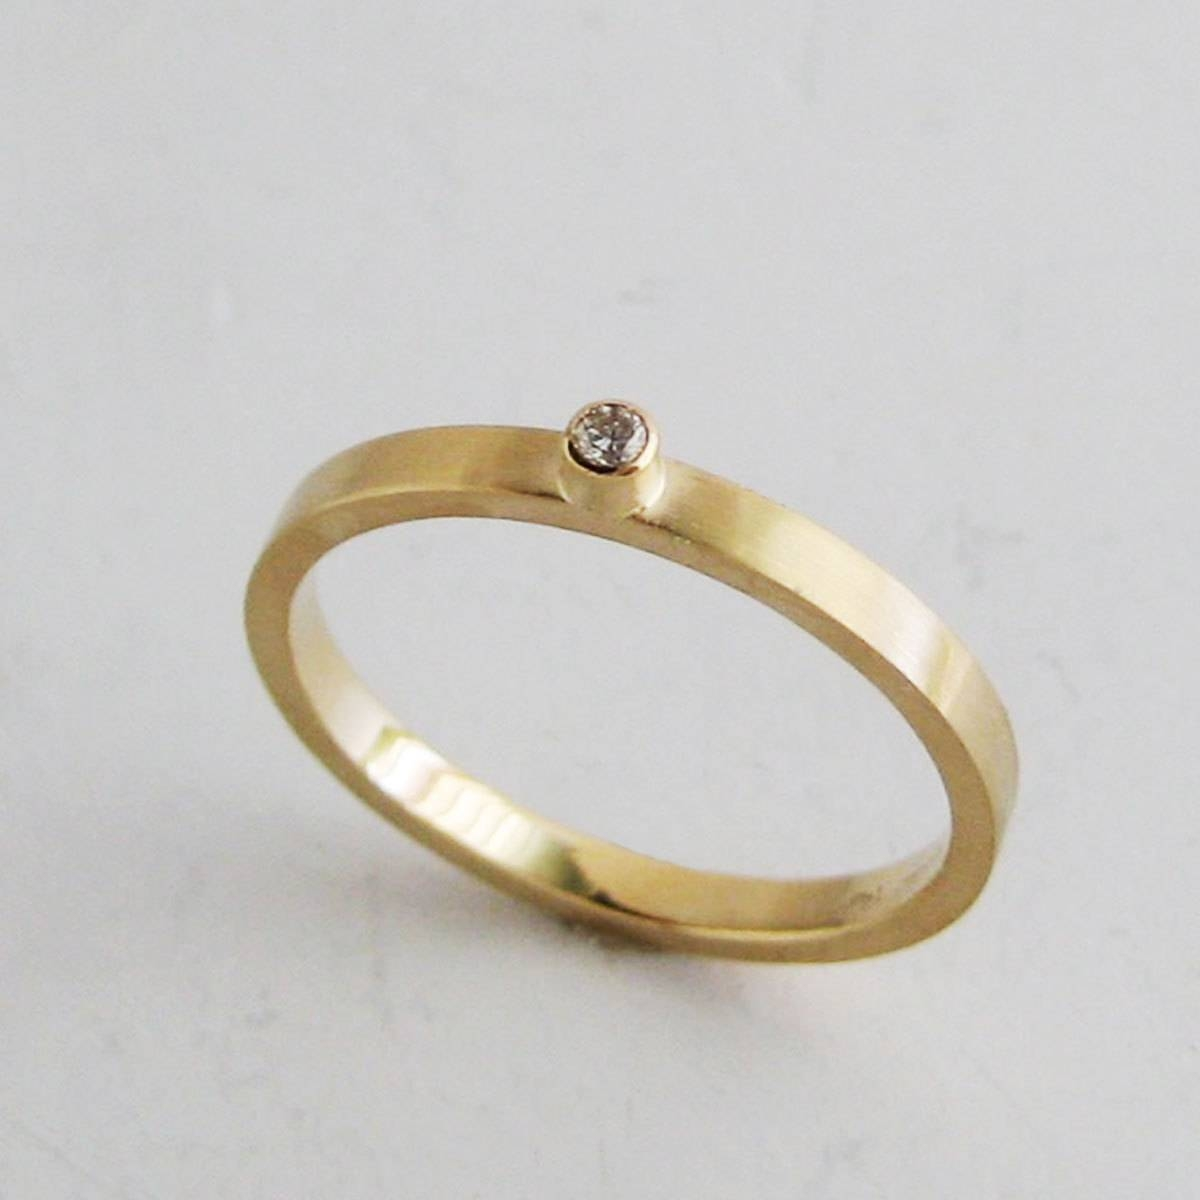 Small Diamond Ring2mm Gold Band With Bezel Set For Small Diamond Wedding Bands (View 4 of 15)